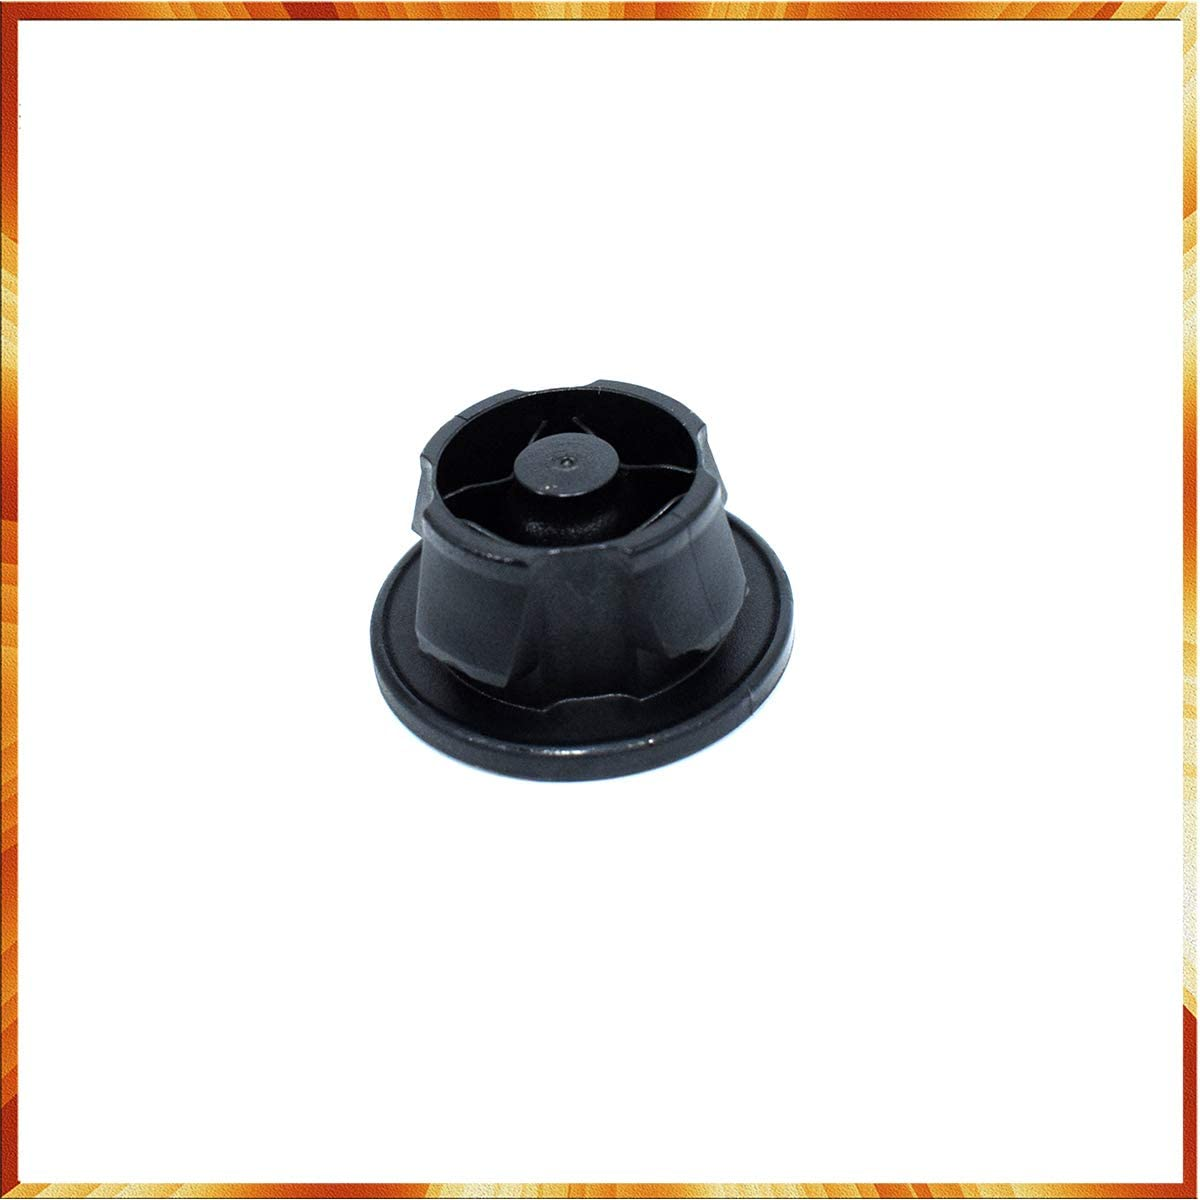 5 x mounting element rubber engine cover.